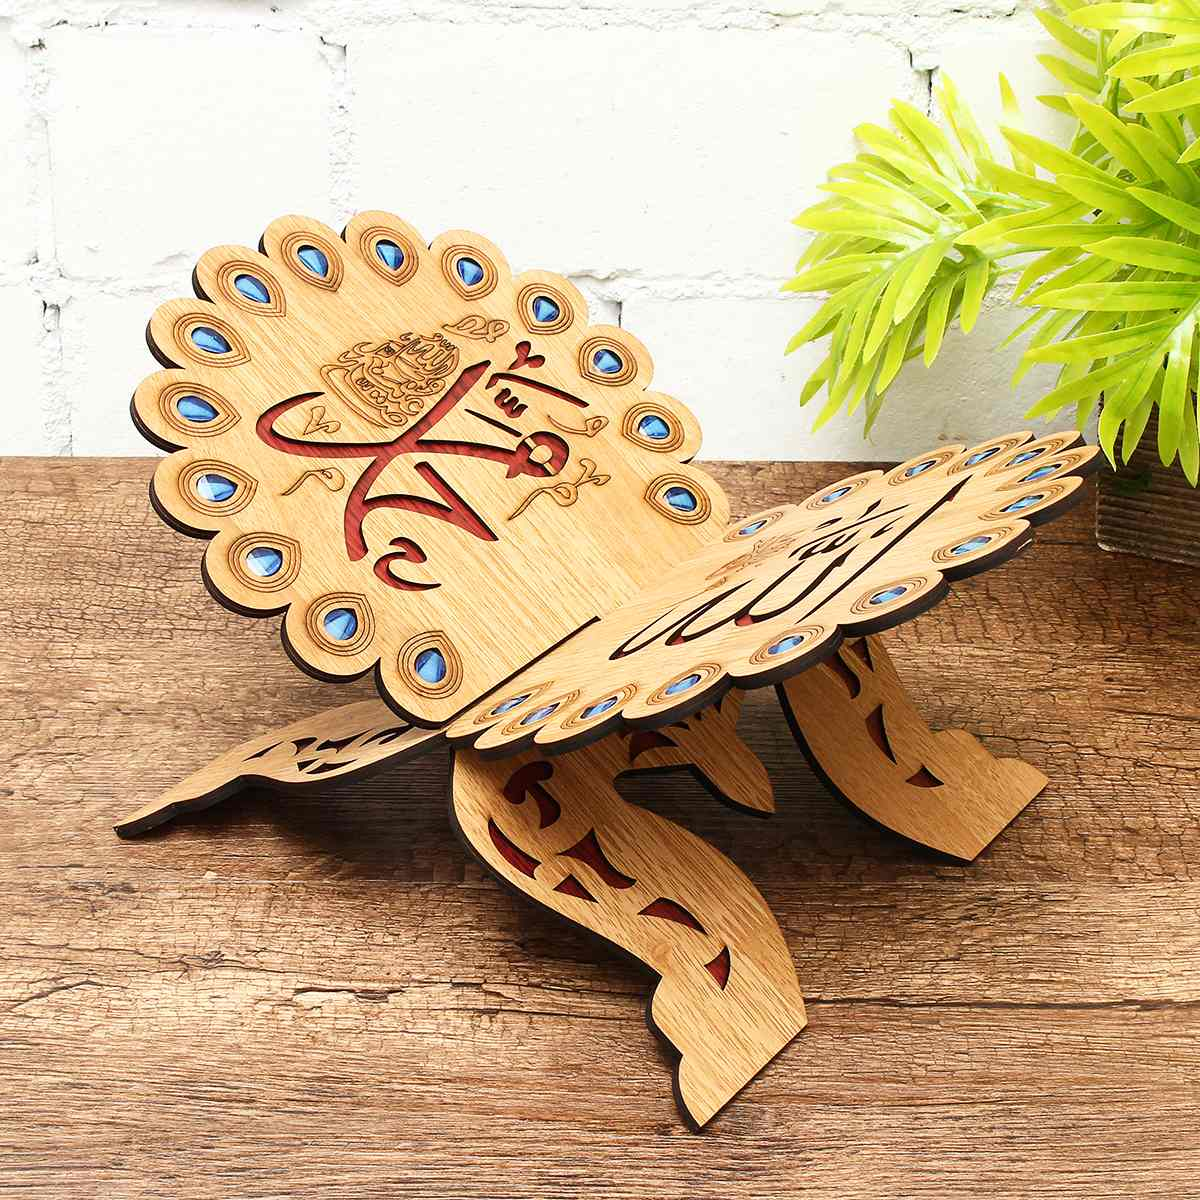 Desk Accessories & Organizer 33*23/30*20cm Removable Wooden Book Stand Holder Quran Muslim Ramadan Allah Islamic Gift Handmade Wood Decor Lightweight Sale Price